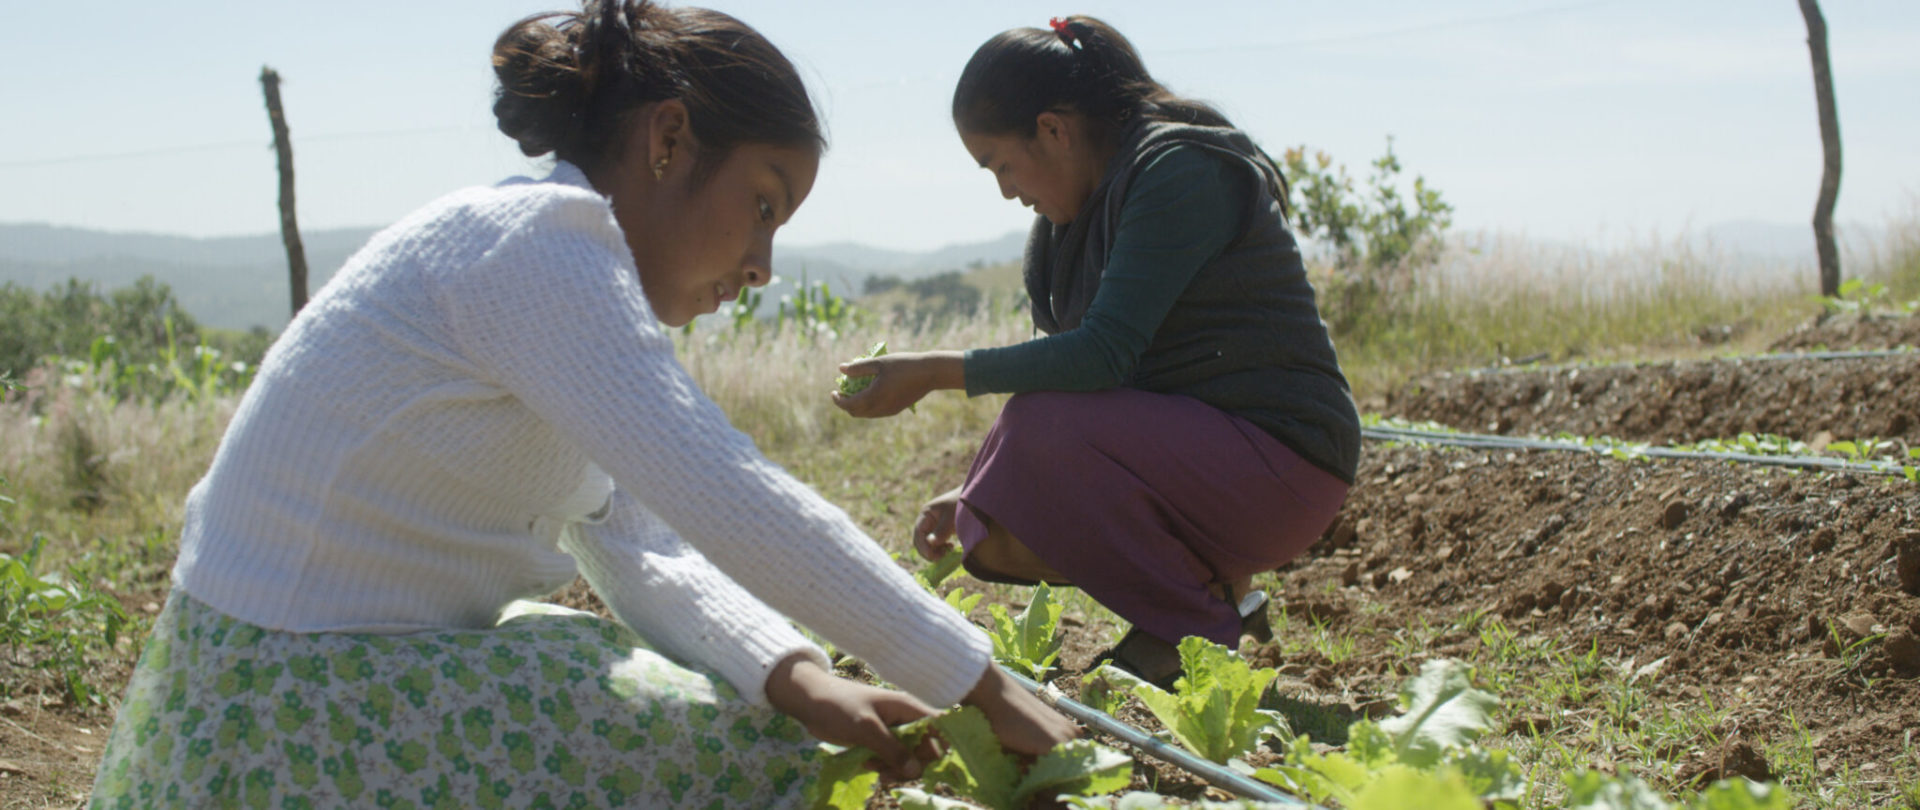 Passing a healthy environment to future generations is a priority to our partners.